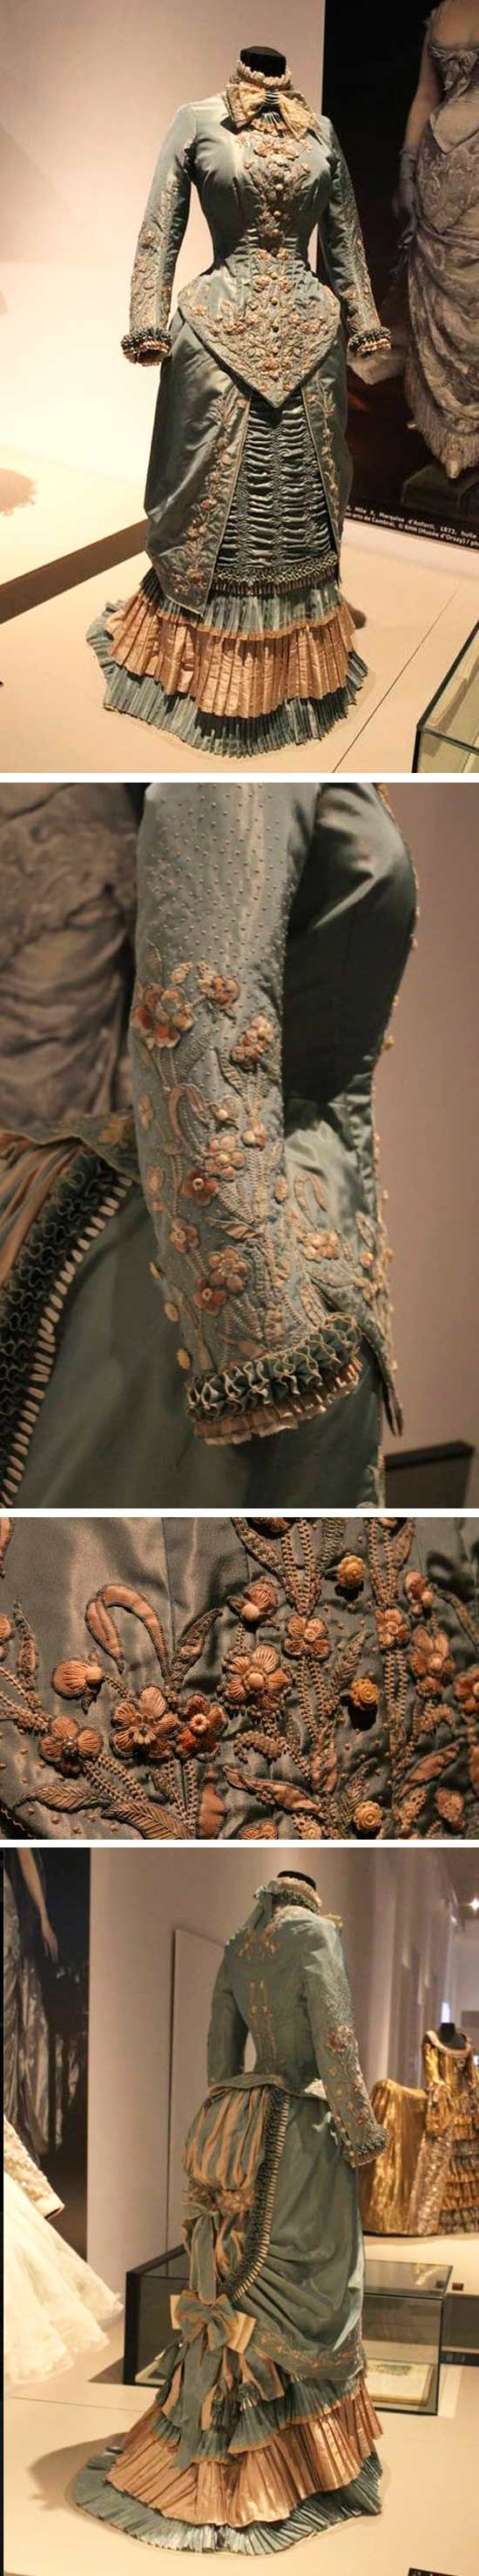 """1882 dress from the exhibit """"Plein les Yeux"""" at the Musée de la Dentelle in Calais. Long list of thanks: to Patricia Brandon, on whose Pinterest board I first saw these pics; Cindy d'Aquin-Pike, who directed me to House of PoLeigh Naise  on Facebook and Patrician Designs on FB, the original source of these wonderful photos."""